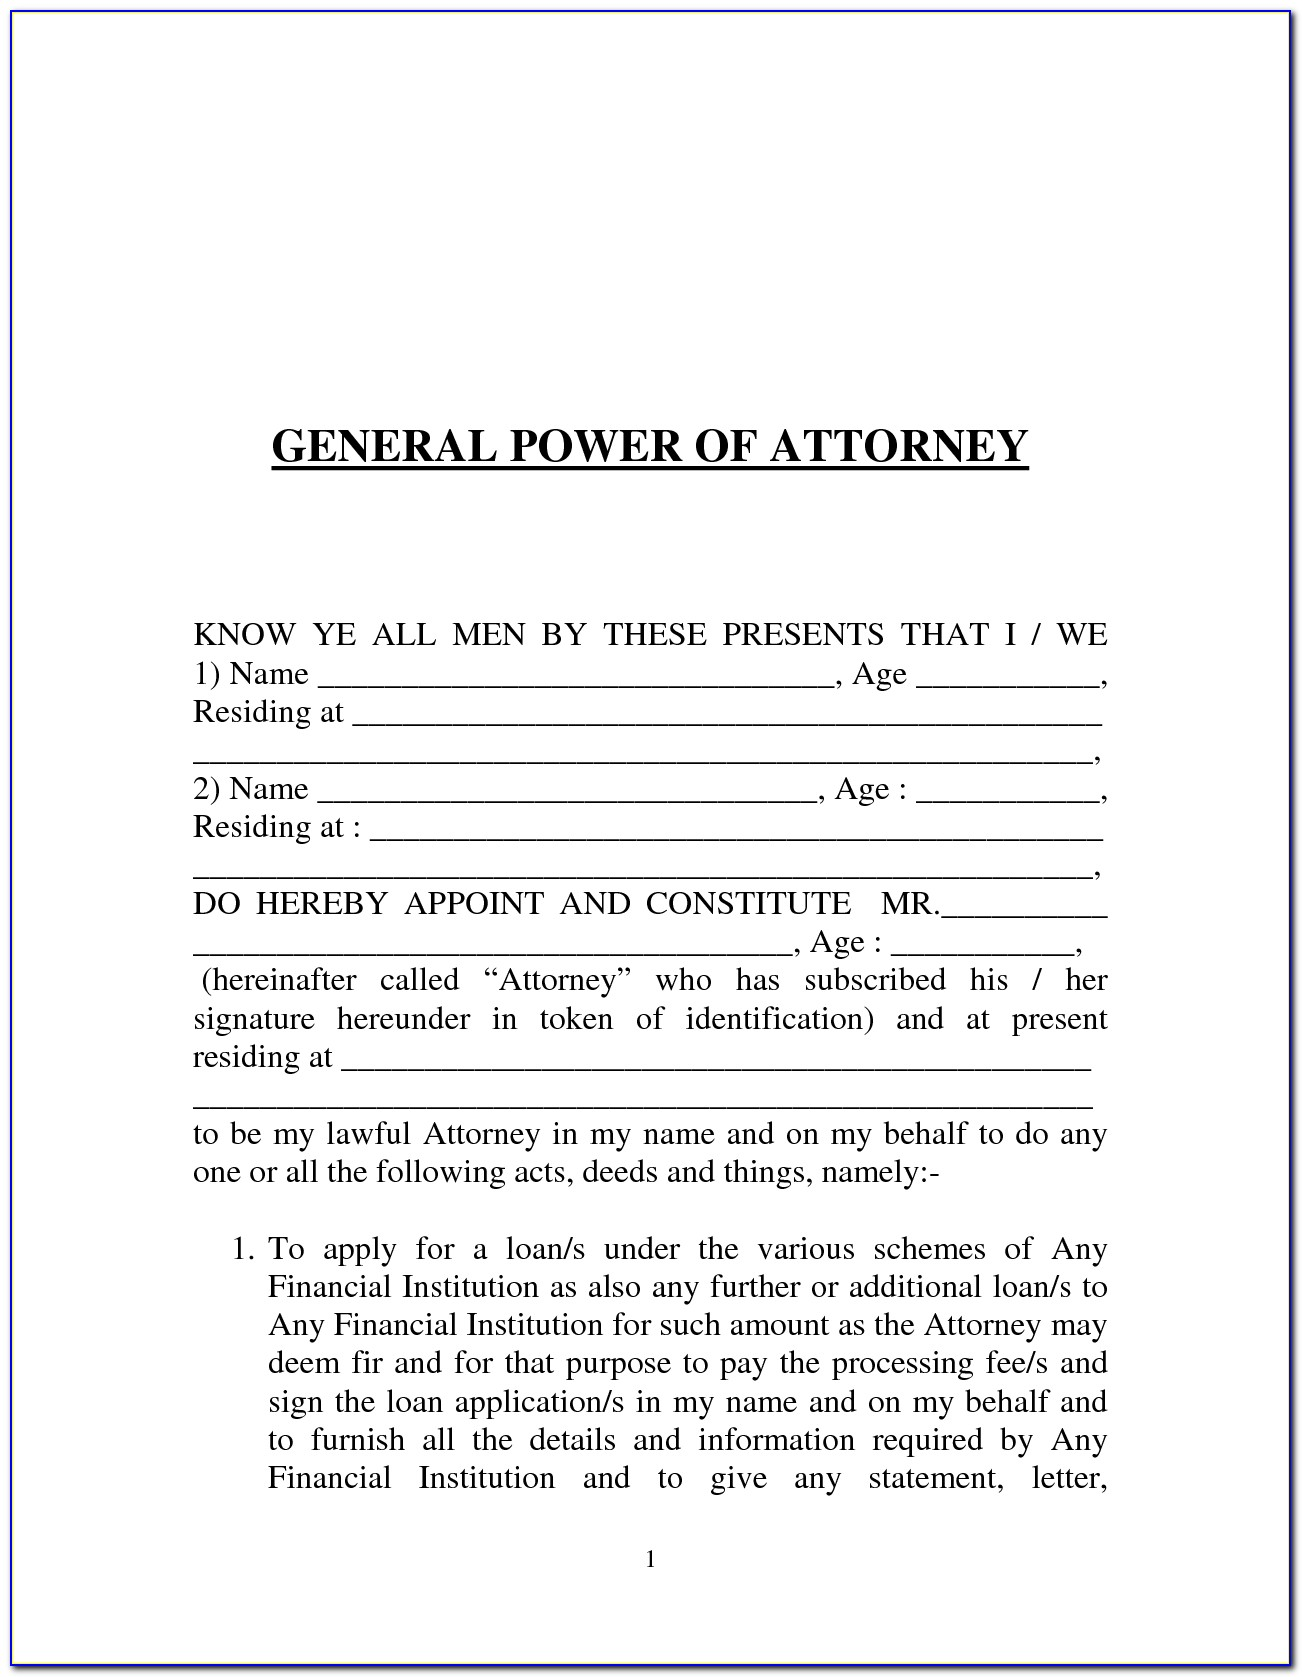 Sample Form For Durable Power Of Attorney